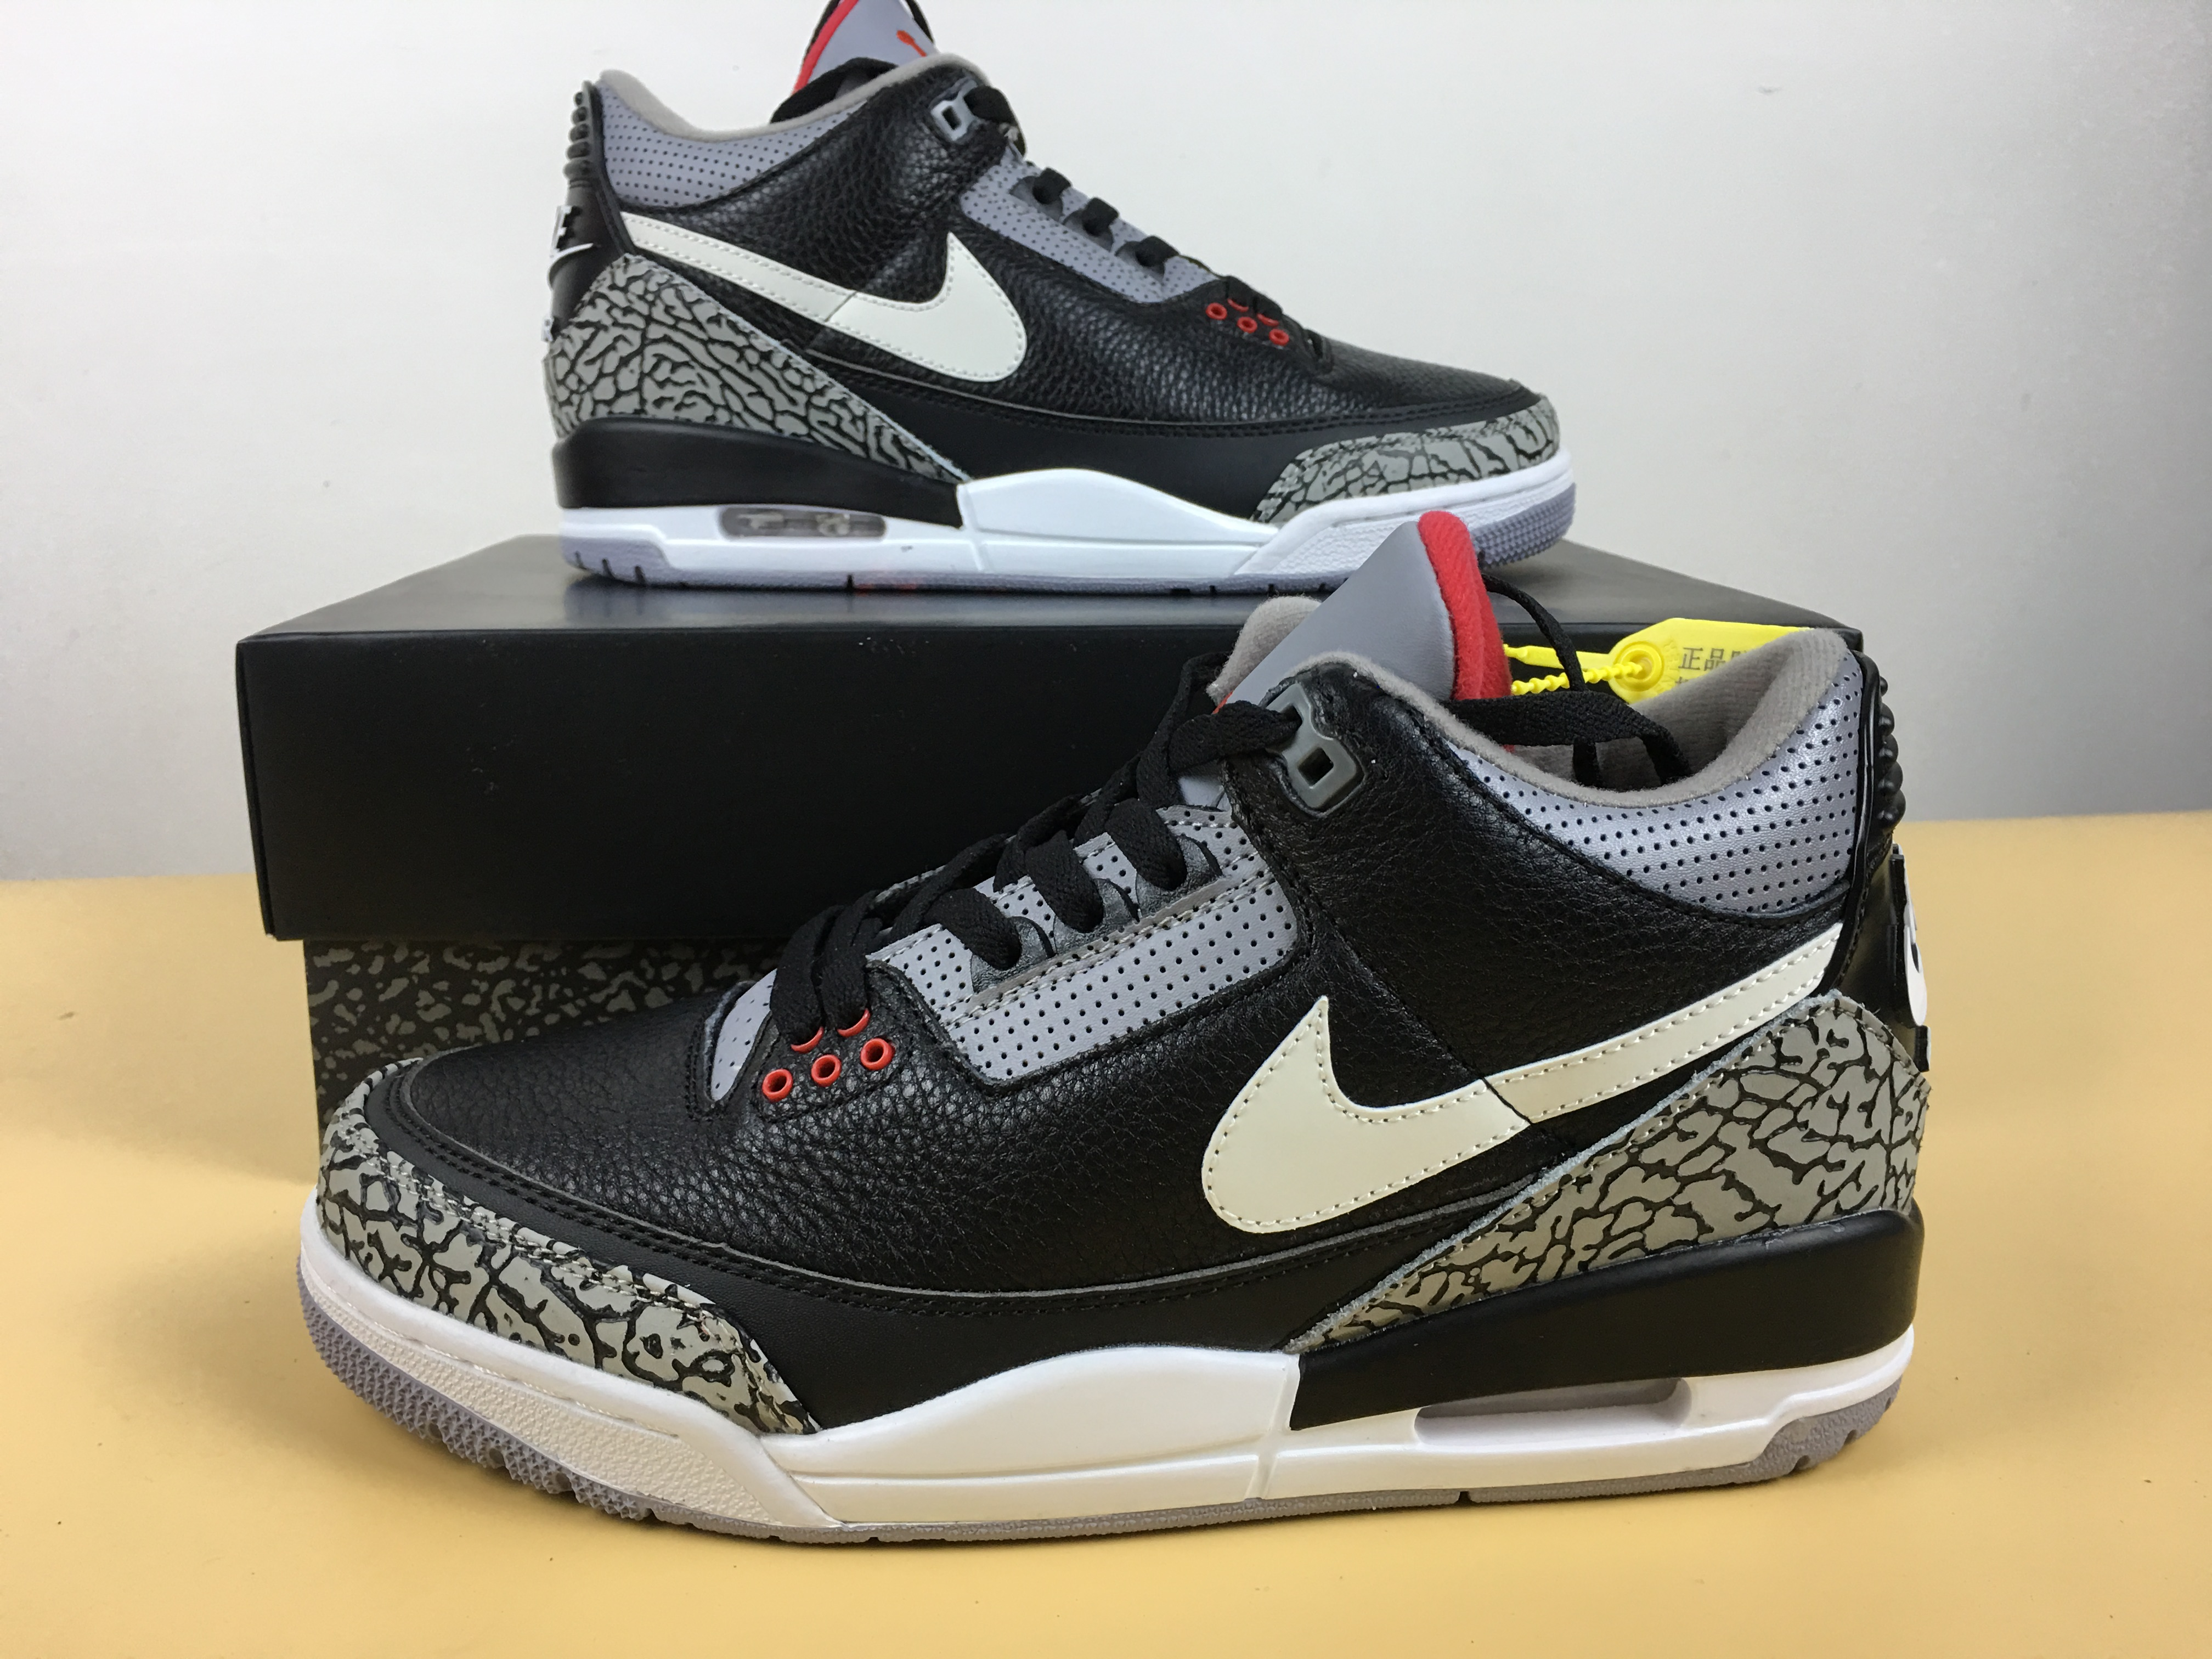 new style 2cc85 564bf New Men Air Jordan 3 JTH Cement Black White Swoosh Shoes ...